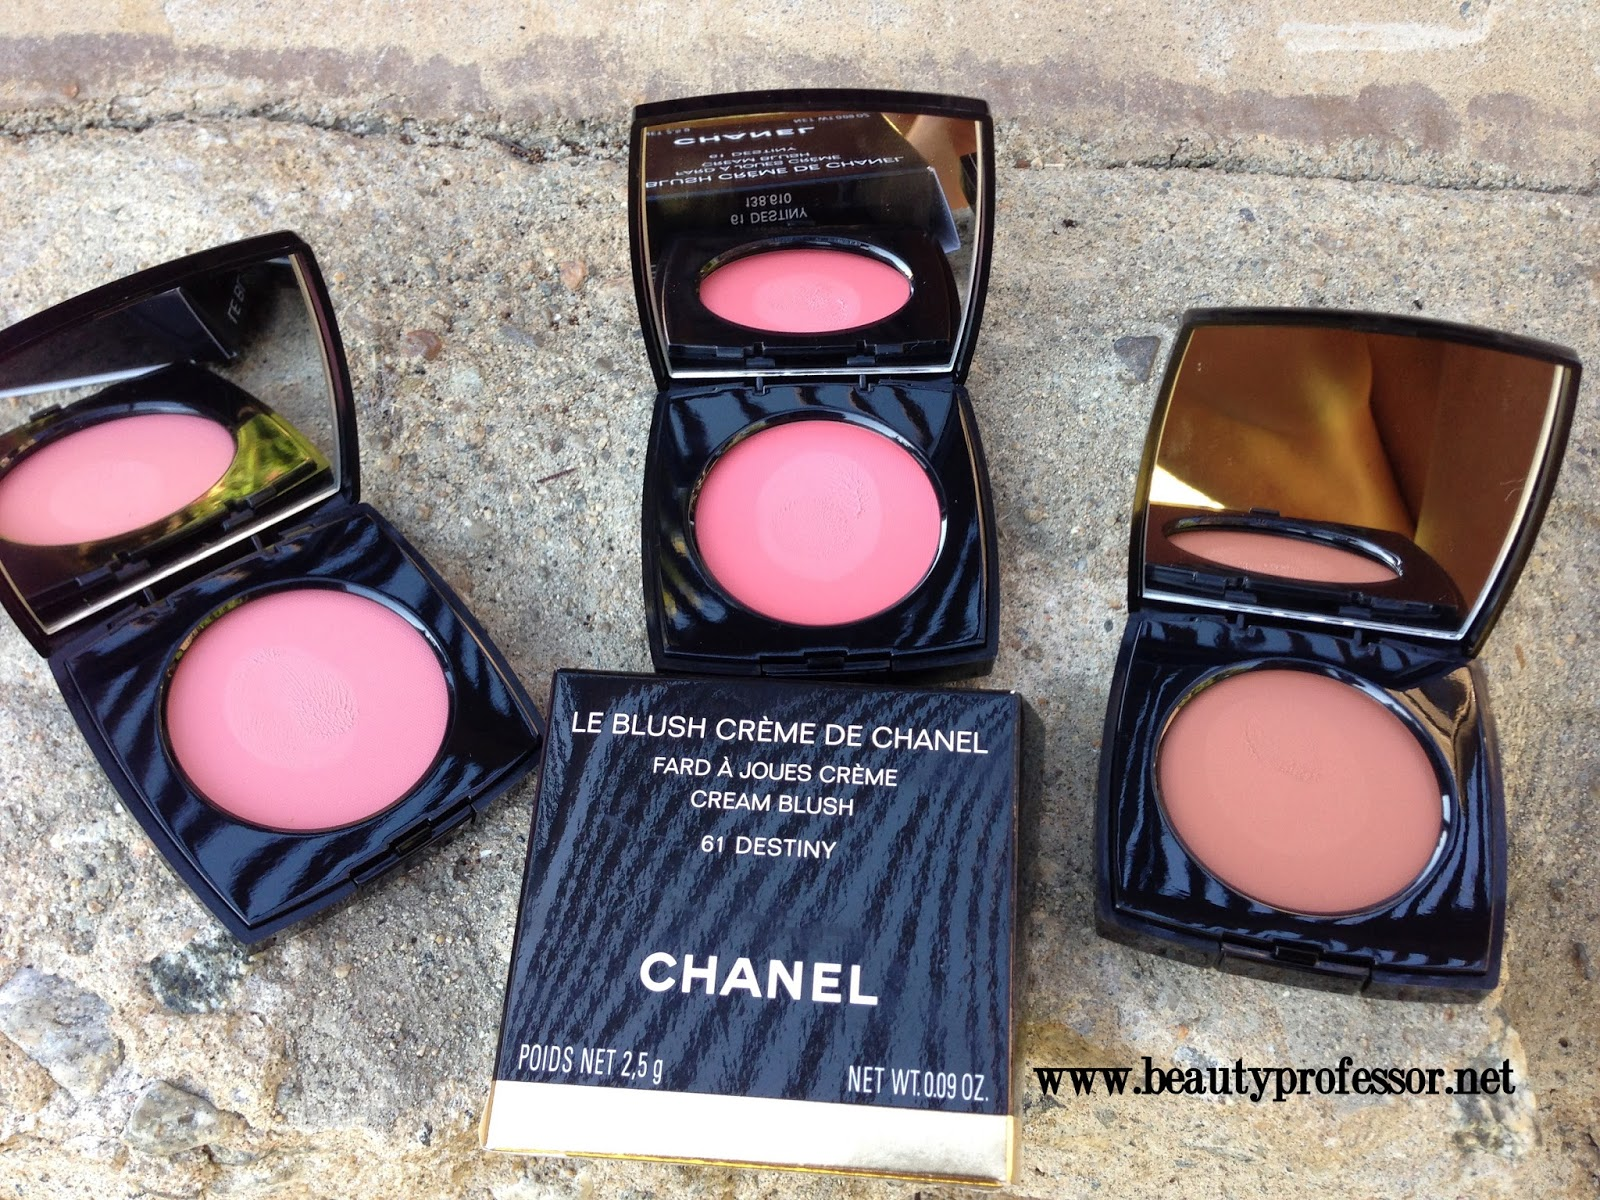 Beauty Professor: Chanel Creme Blush: Fall 2013 Collection ...